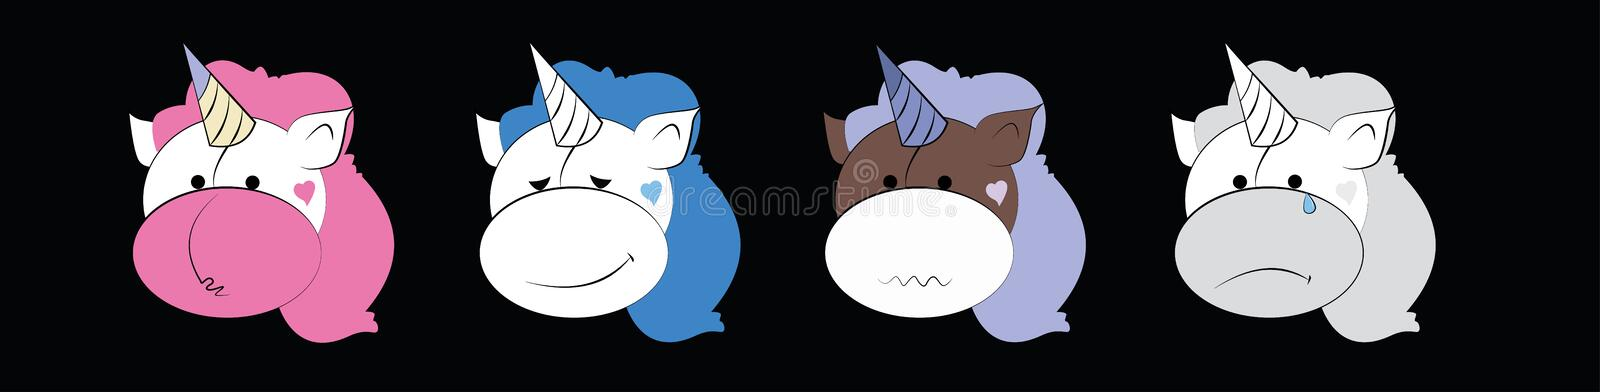 A set of graphic emoticons set - unicorn. Emoji vector collection. Smile icons web. A set of graphic emoticons set - unicorn. Emoji vector collection. Smile royalty free illustration